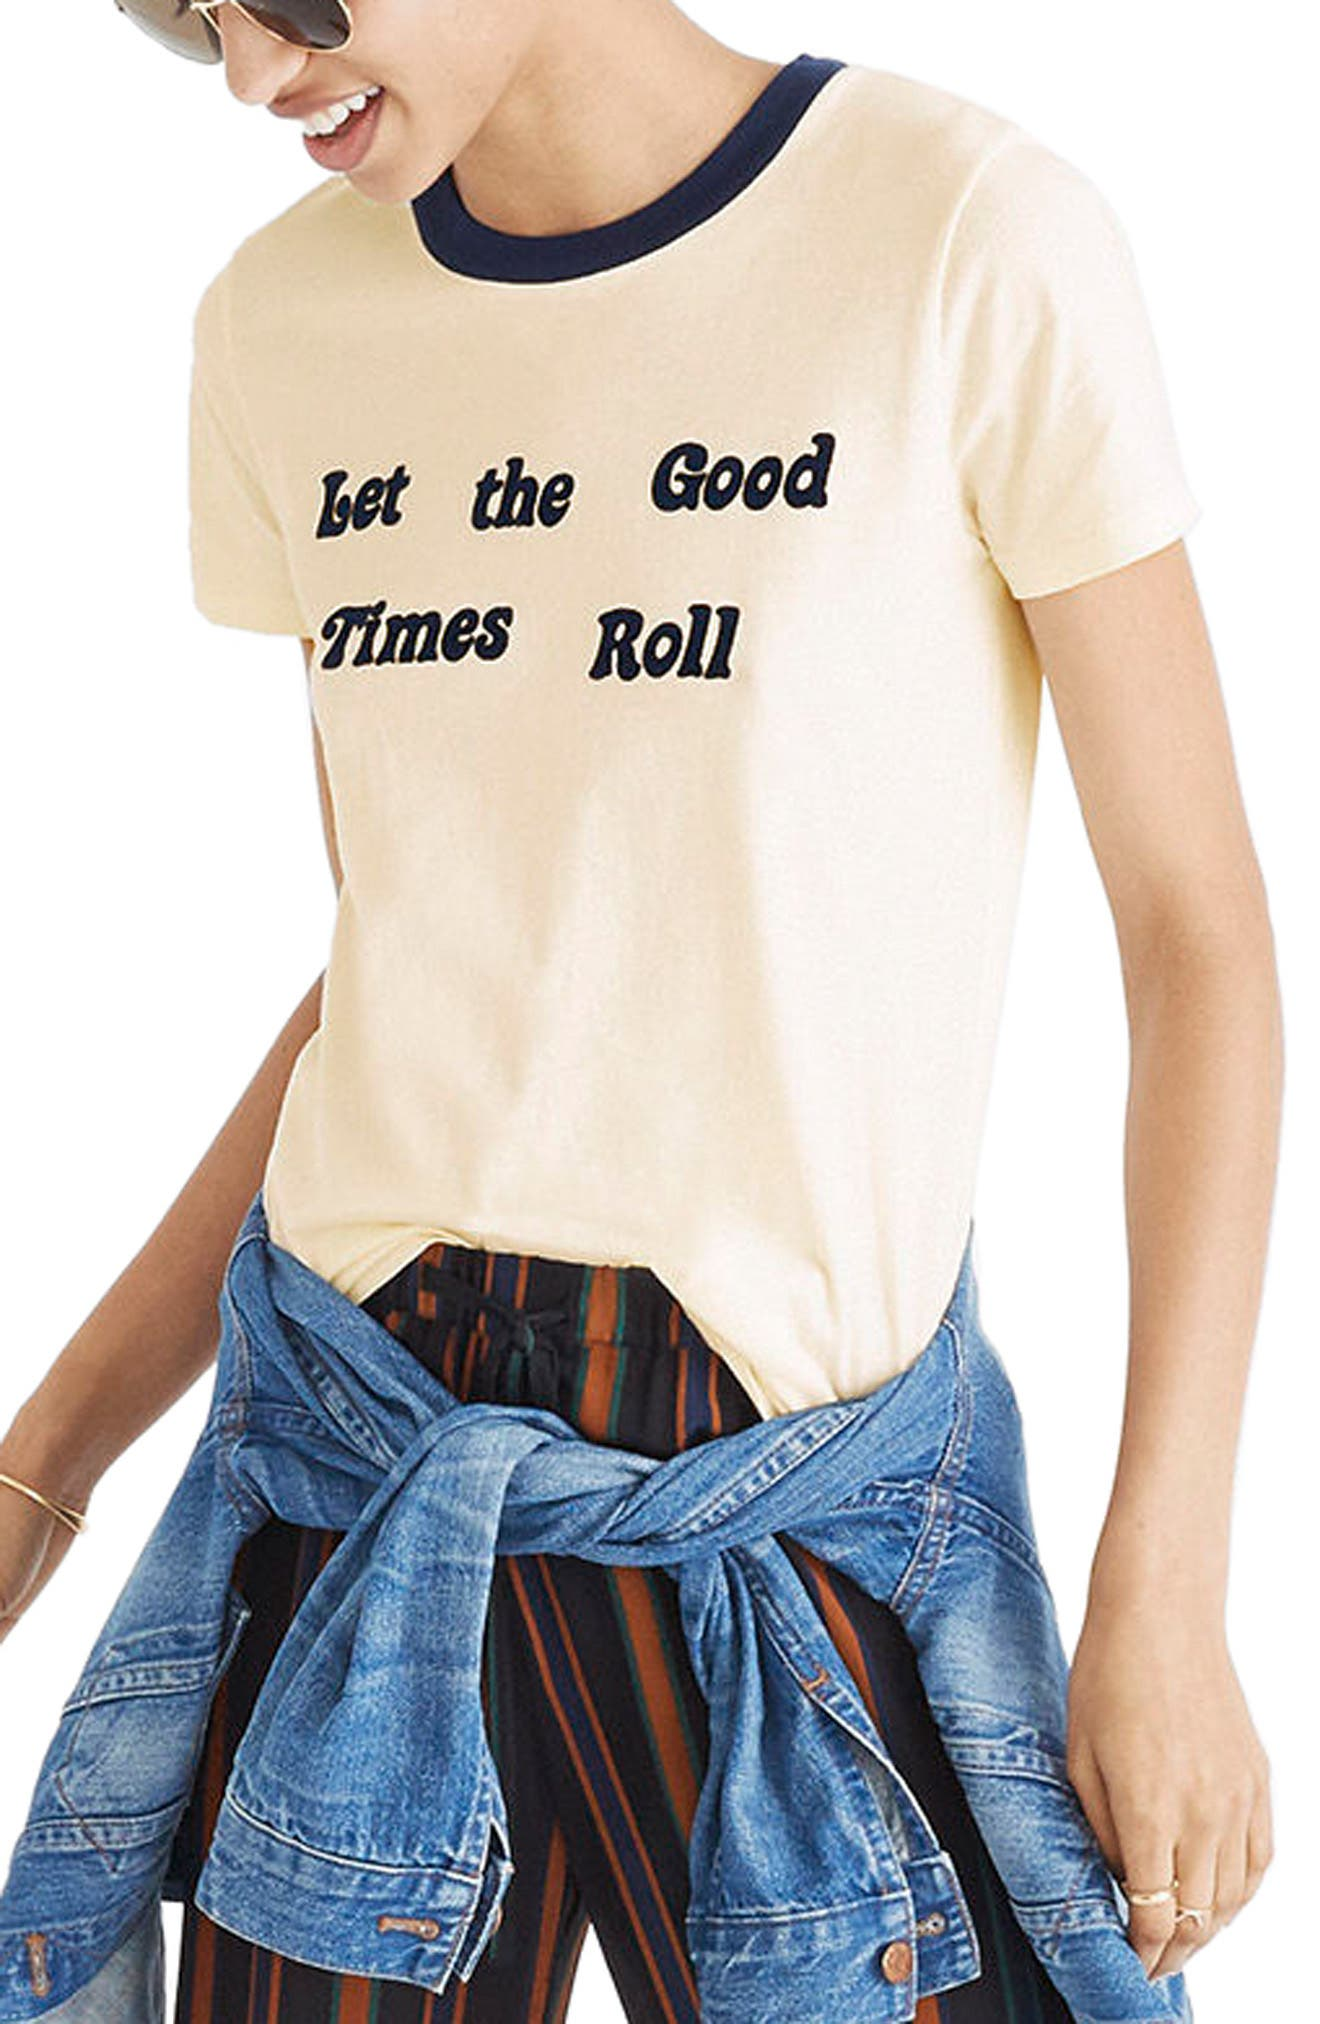 Let the Good Times Roll Ringer Tee,                             Main thumbnail 1, color,                             Bright Ivory